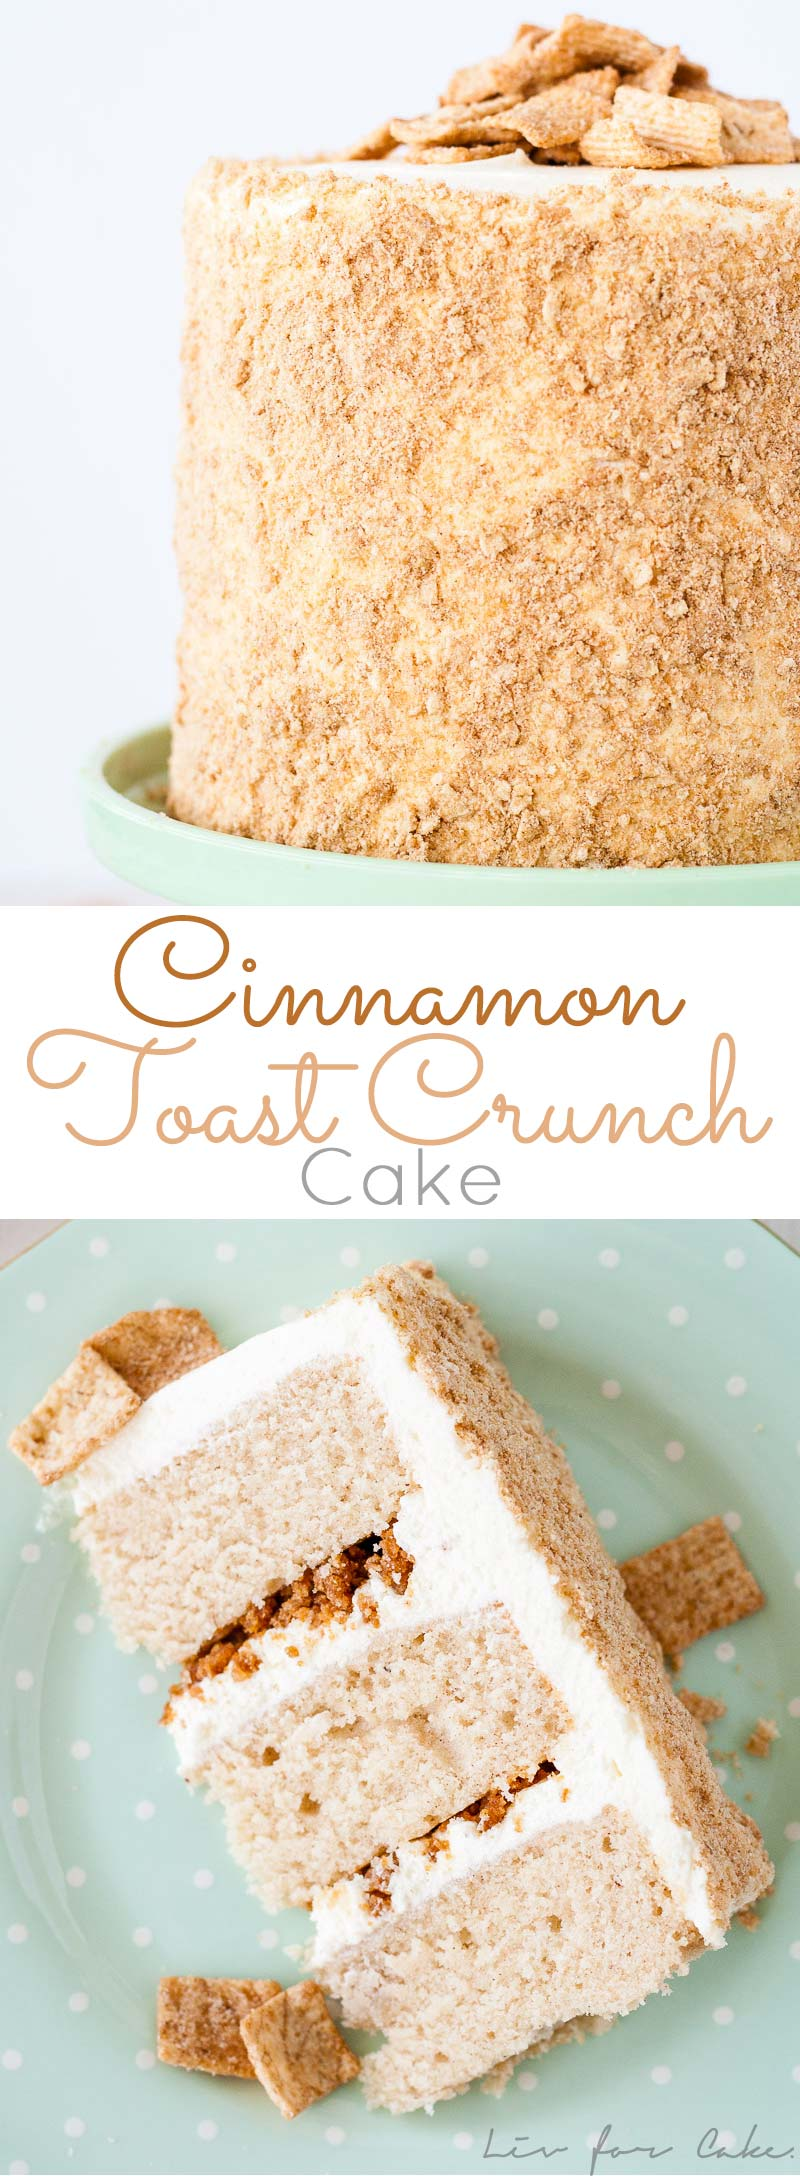 Your Favorite Cereal In Cake Form Cinnamon Cake Cream Cheese Frosting And Cinnamon